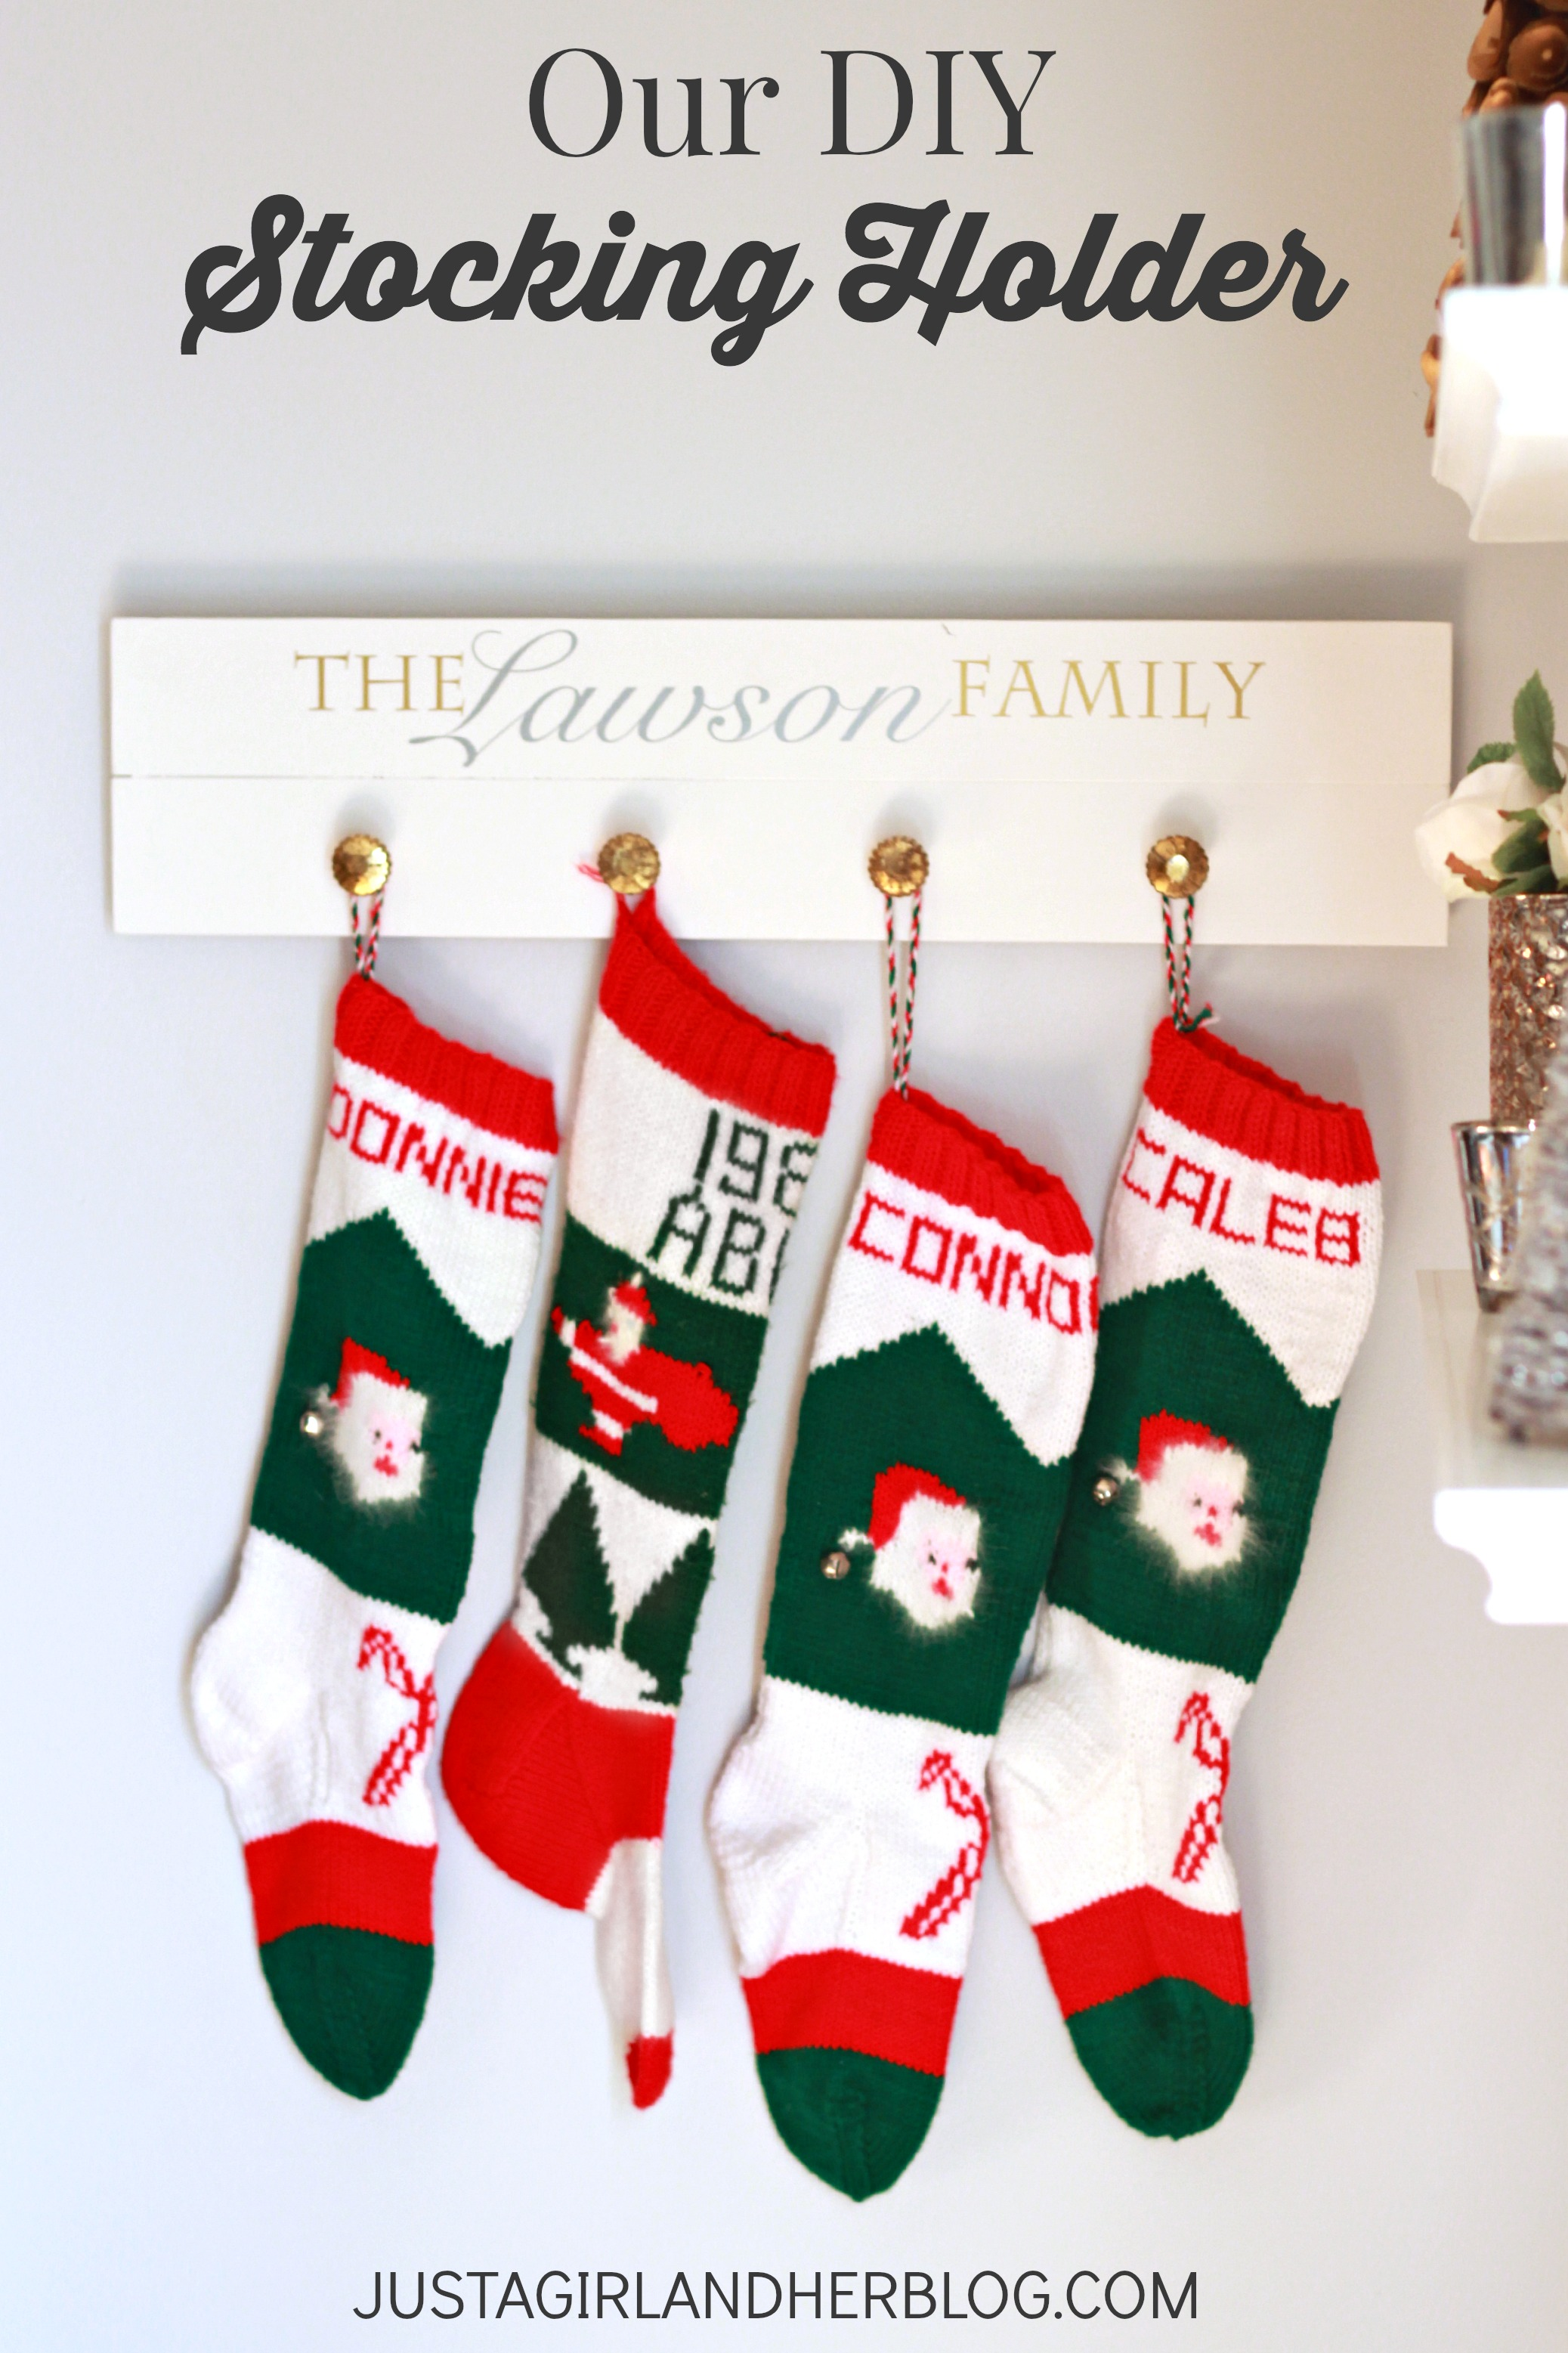 Fascinating stocking holder for interior decor ideas with christmas stocking holders